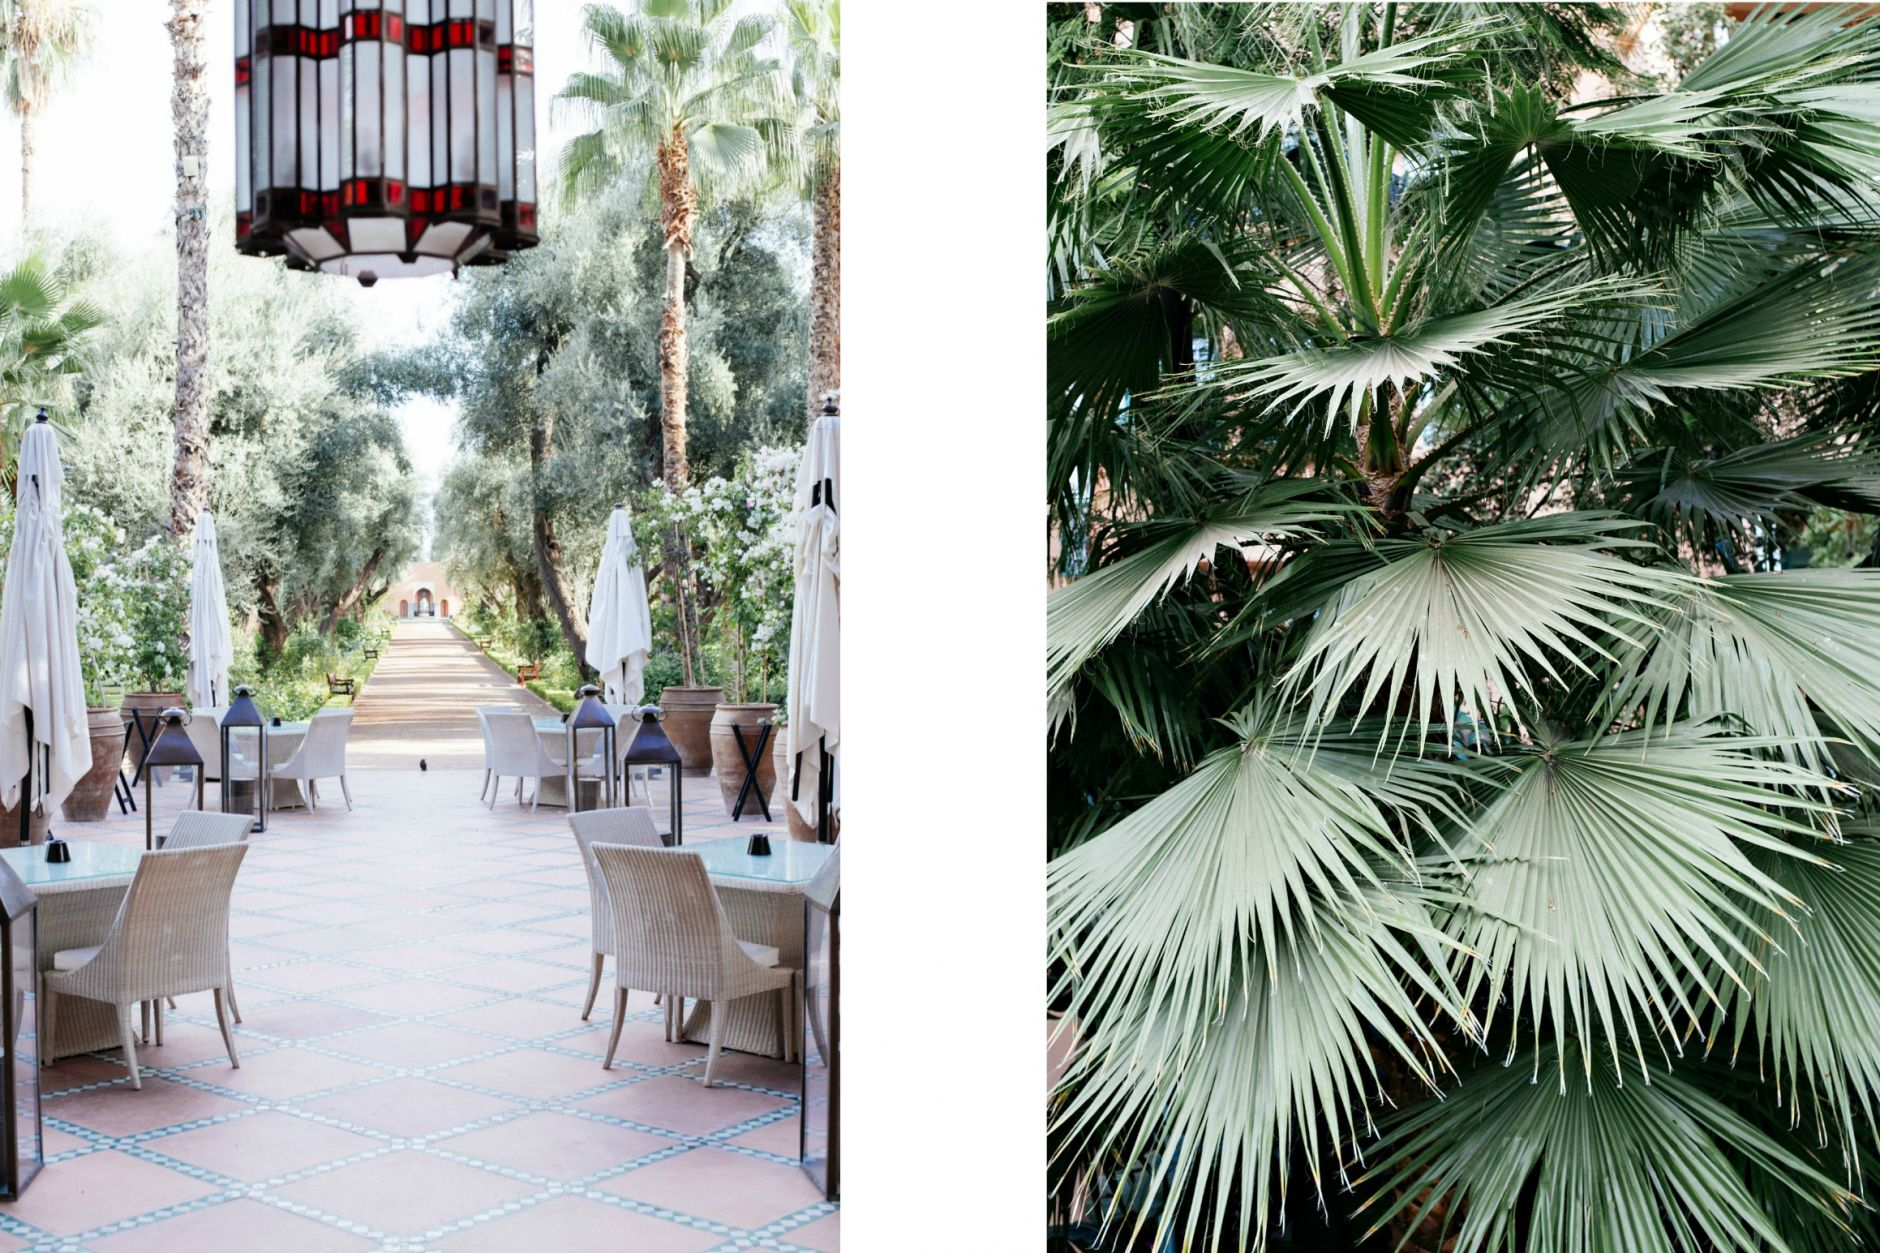 palace-in-marrakesh-morocco-la-mamounia-5-star-luxury-hotel-spa-17